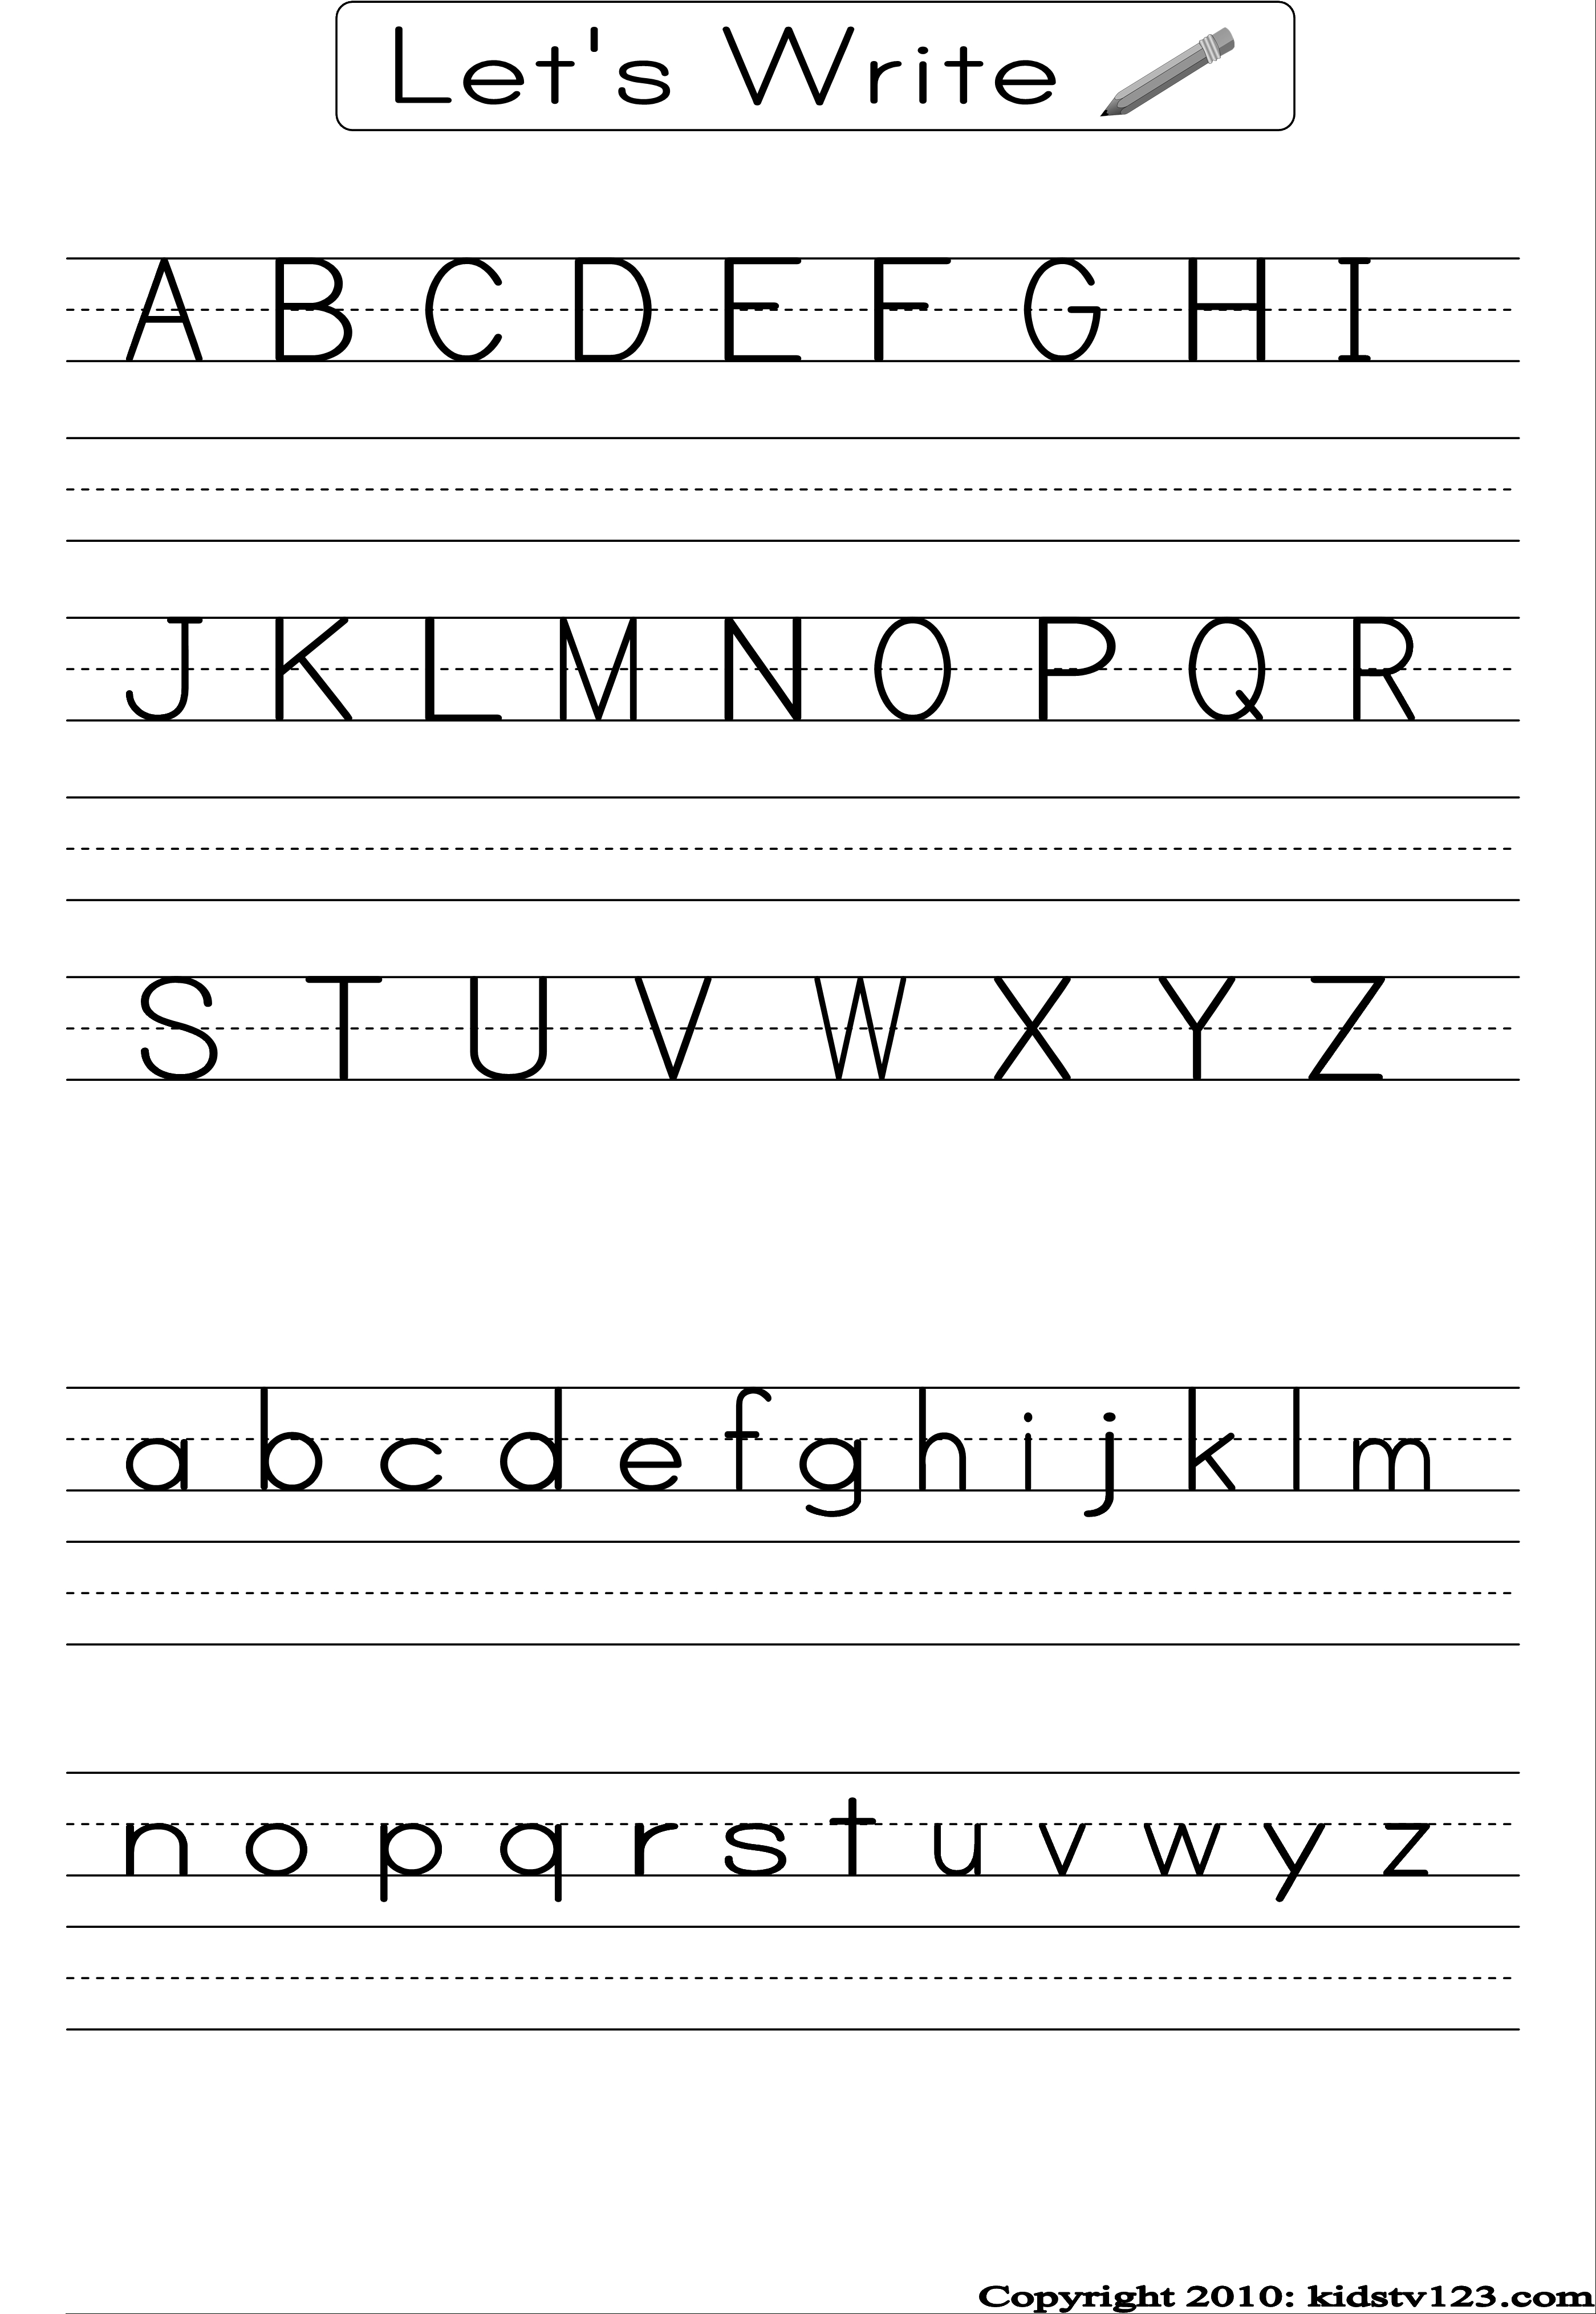 Free Printable Alphabet Worksheets, Preschool Writing And Pattern - Free Printable Abc Worksheets